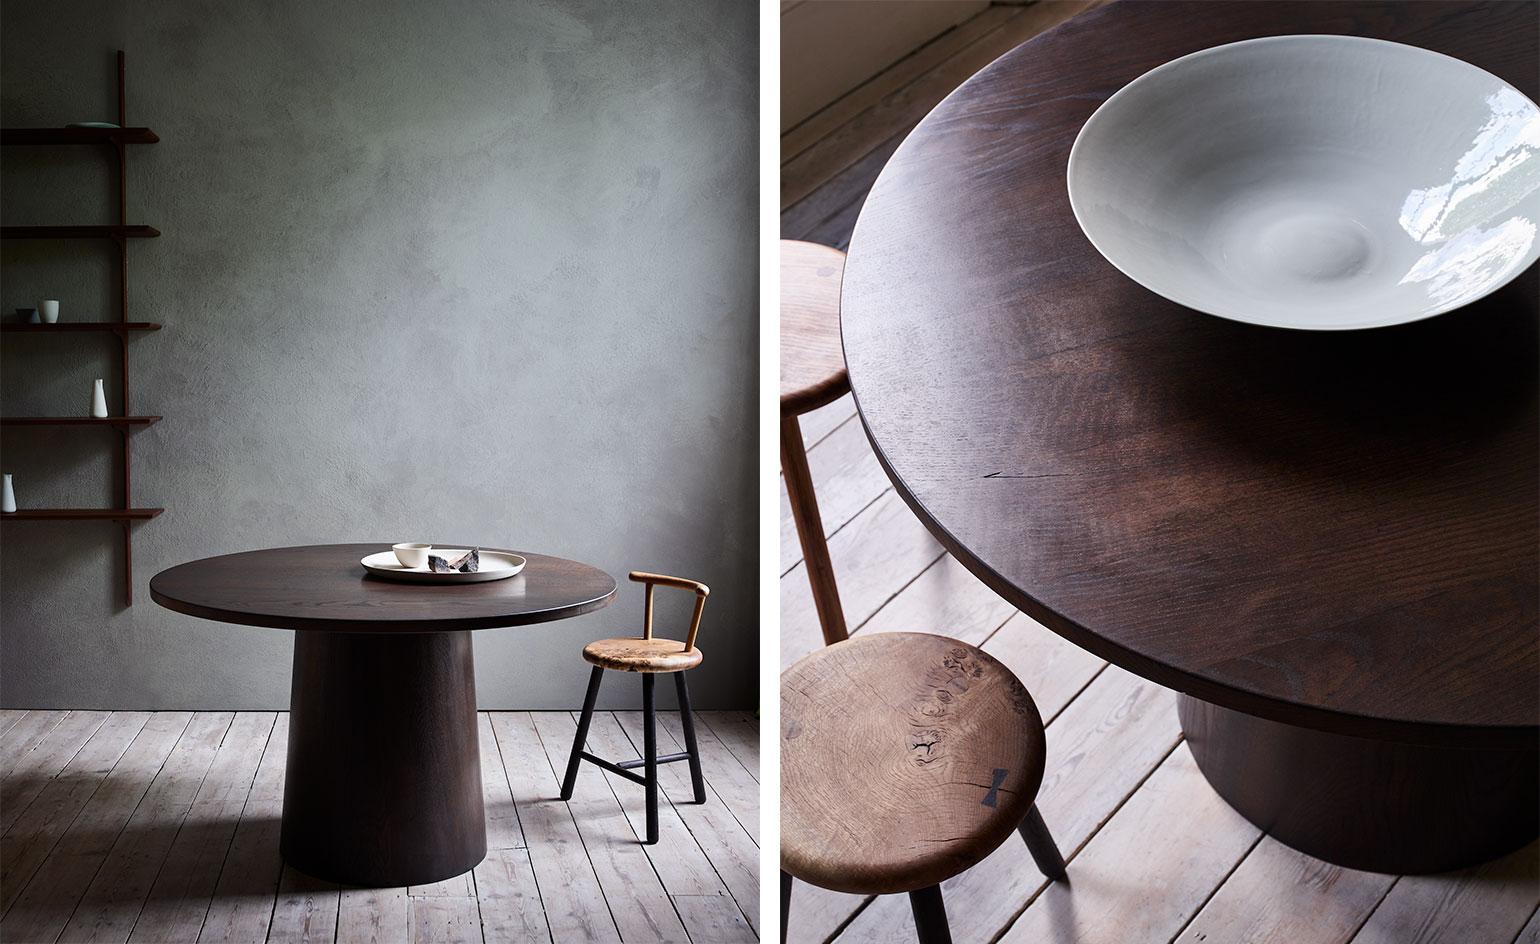 The Wallpaper* dining room: fabulous furnishings for illuminating suppers